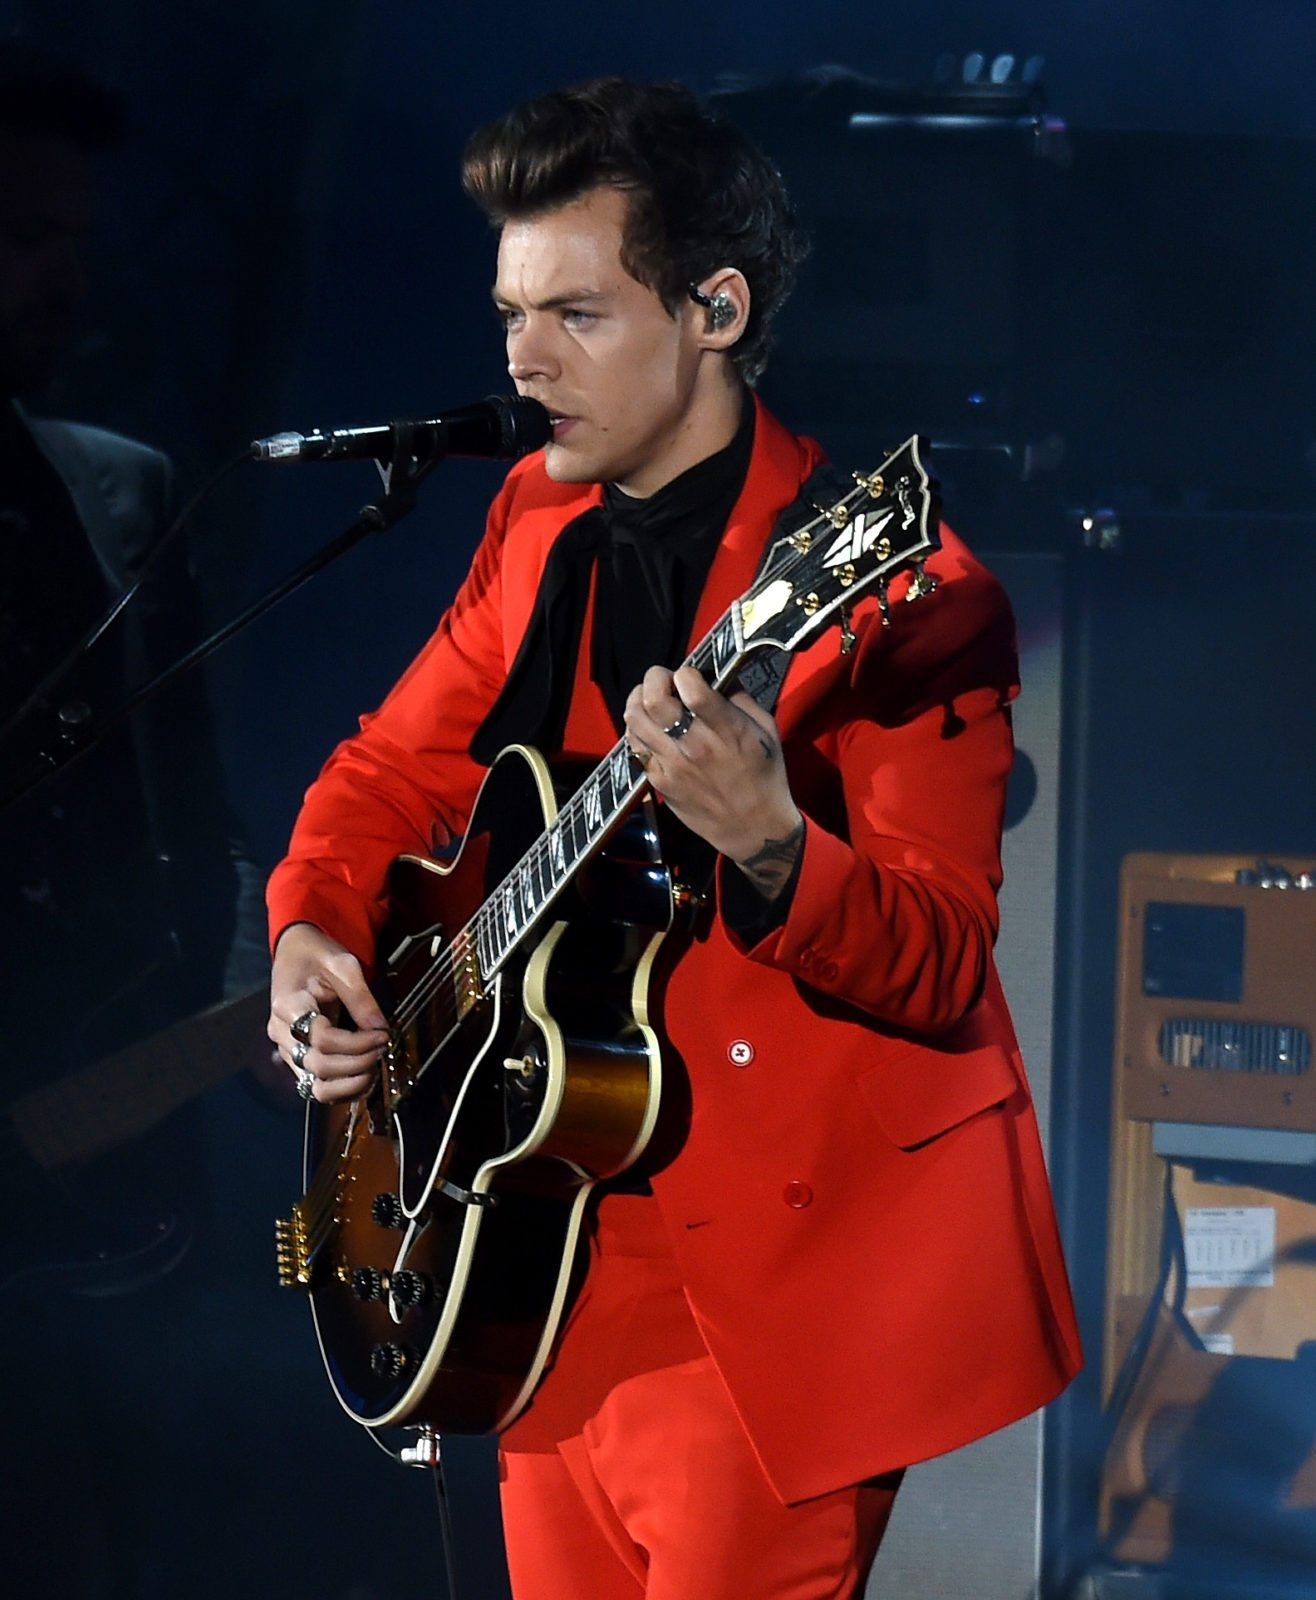 LOS ANGELES, CA - OCTOBER 21: Harry Styles performs onstage at CBS RADIO's We Can Survive 2017 at The Hollywood Bowl on October 21, 2017 in Los Angeles, California. (Photo by Kevin Winter/Getty Images for CBS RADIO)